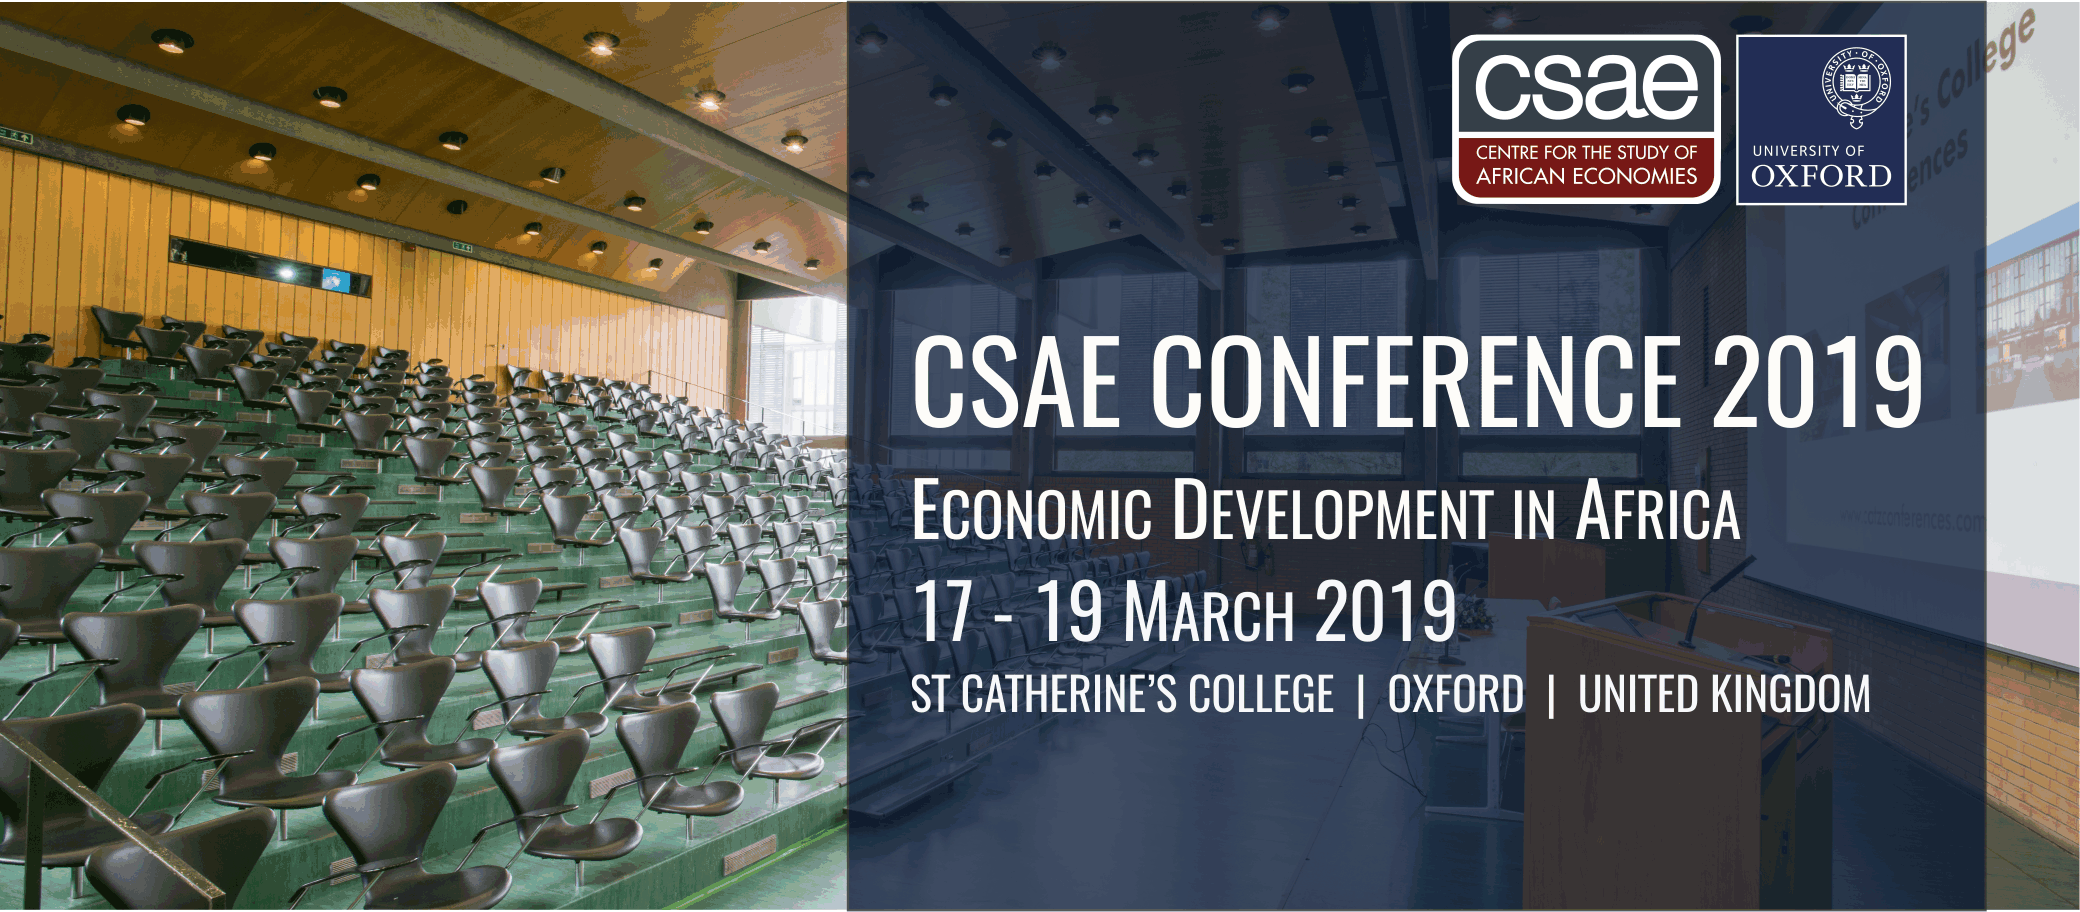 CSAE Conference 2019